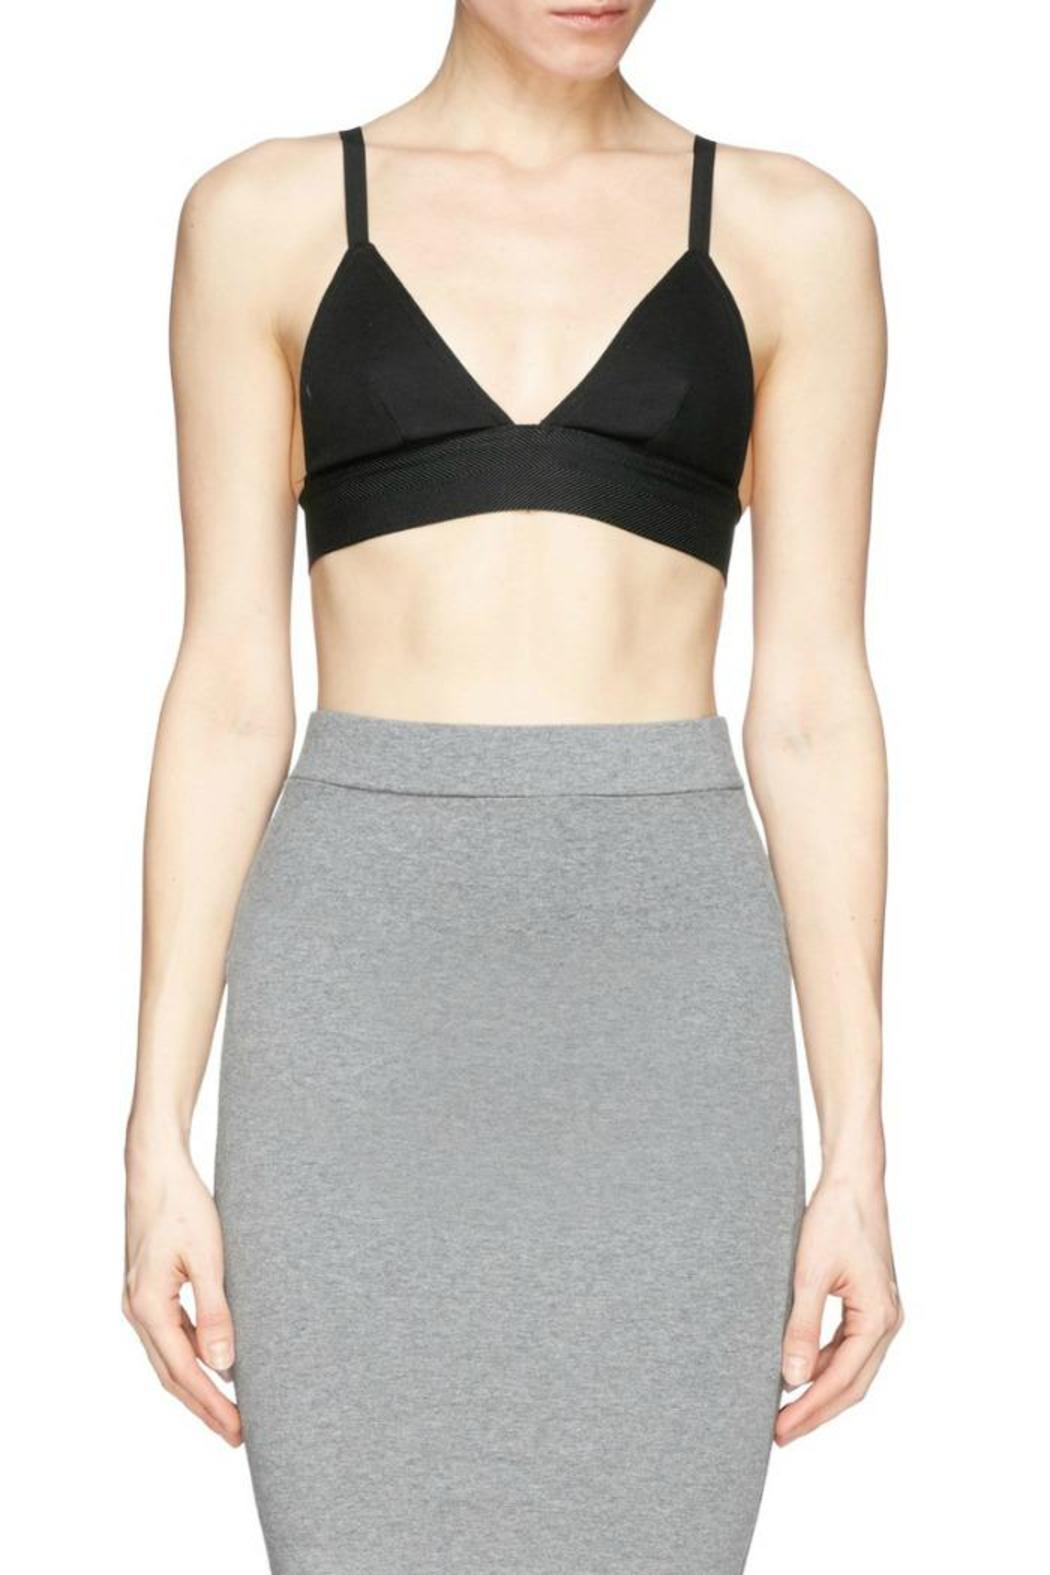 T by Alexander Wang Stretch Pique Triangle Bra - Main Image